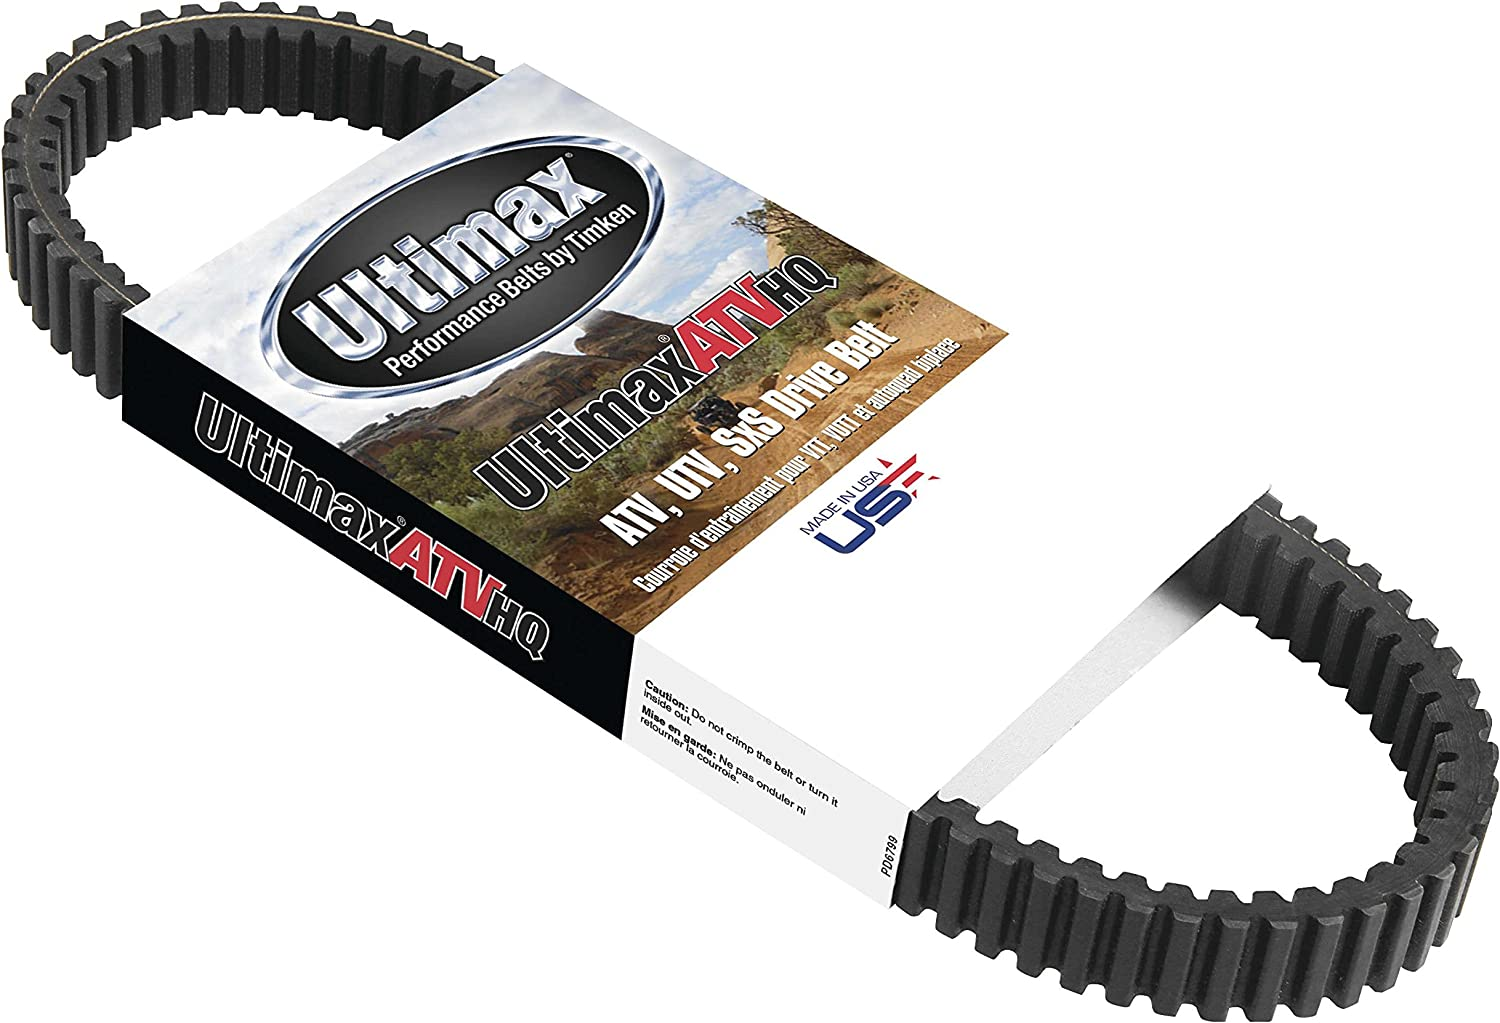 04-15 Ultimax UHQ446 Belt HQ for Can-Am Applications